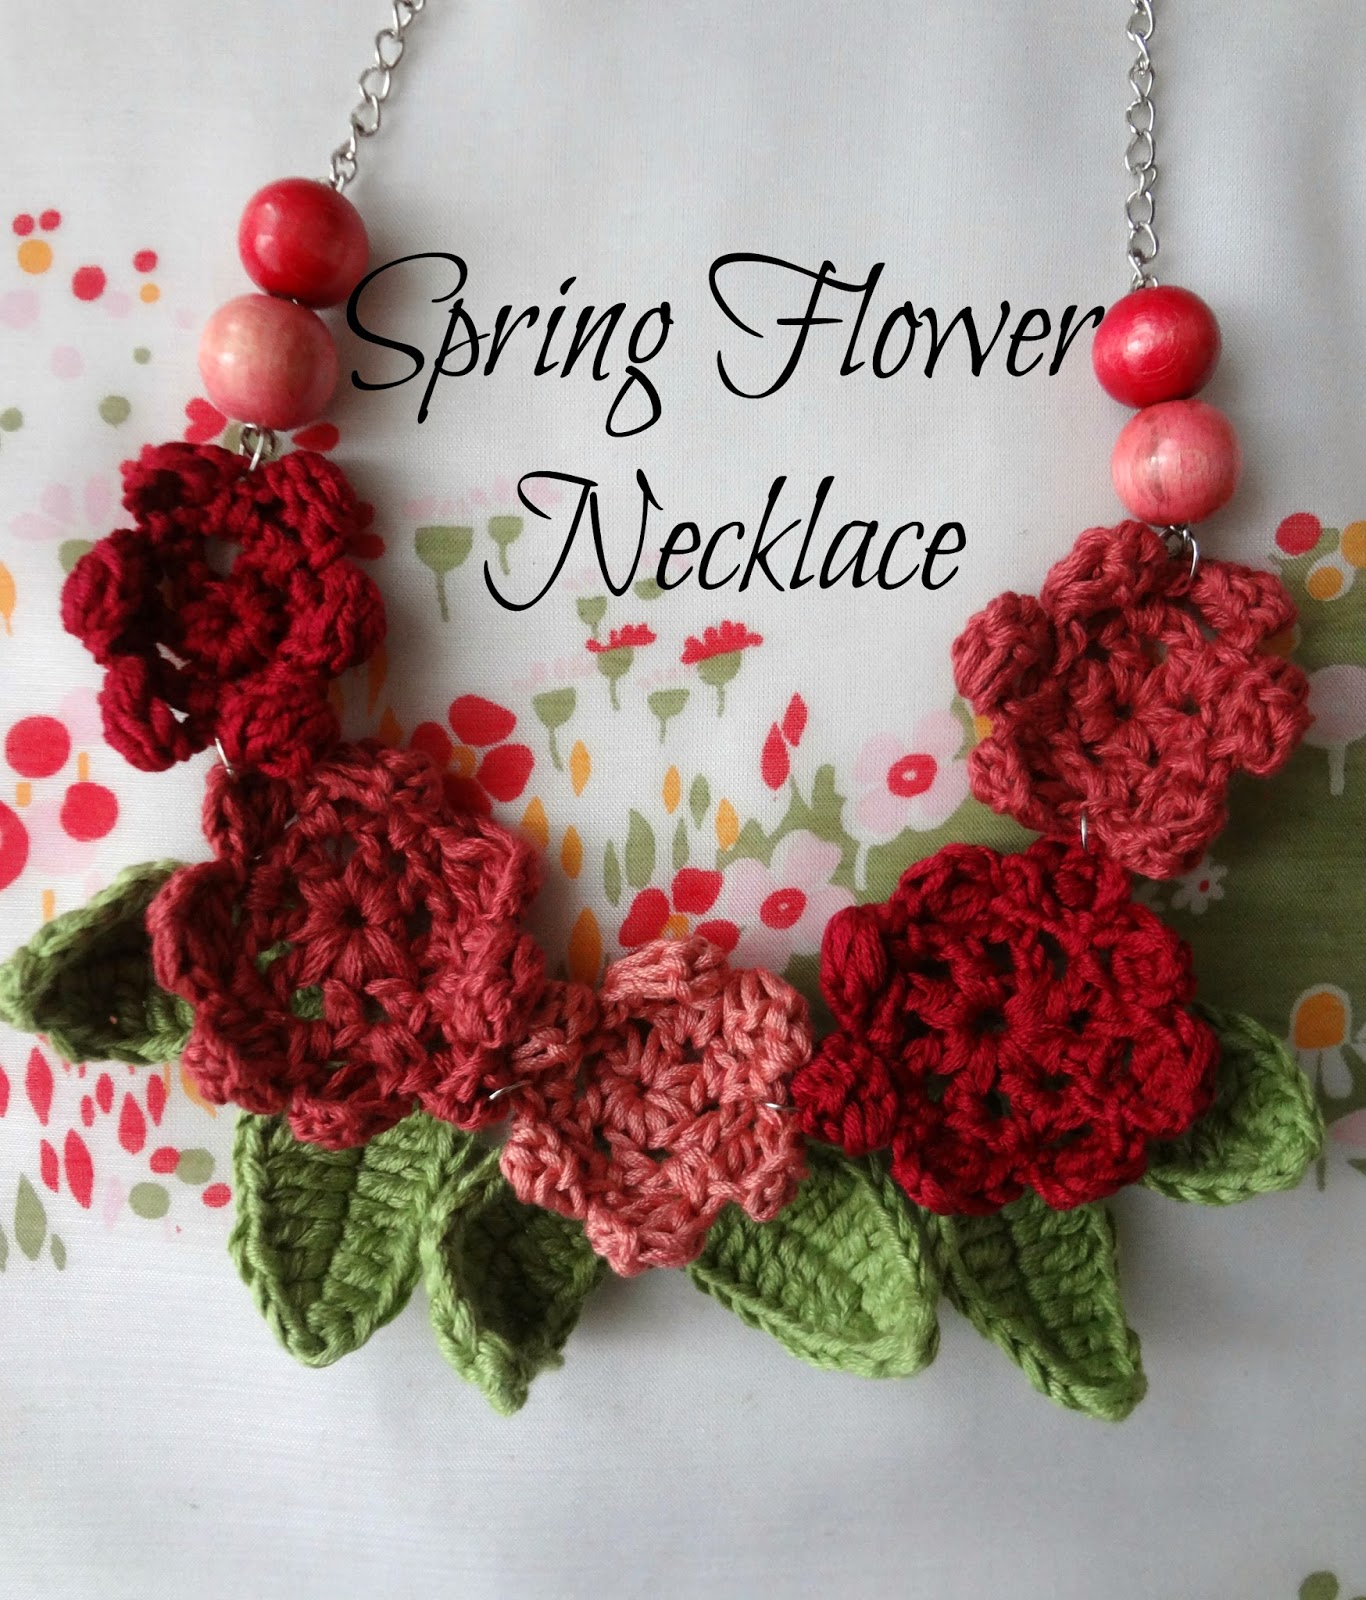 Little Treasures: Spring Flower Necklace 2- a crochet pattern